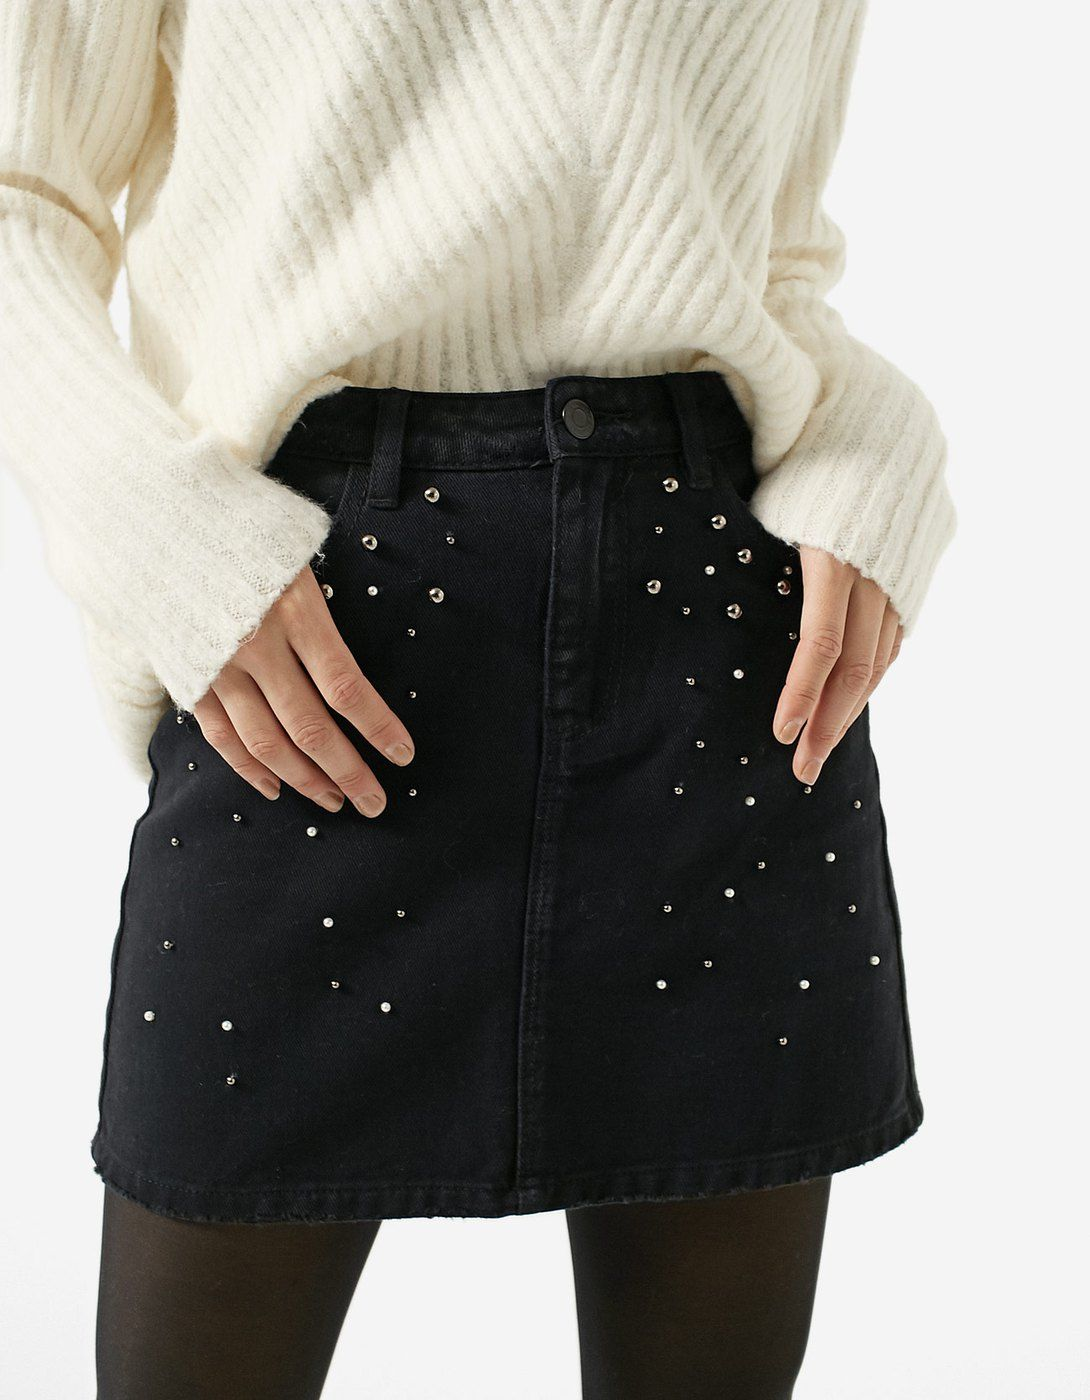 eb049c1b69a Denim skirt with faux pearls - JUST IN